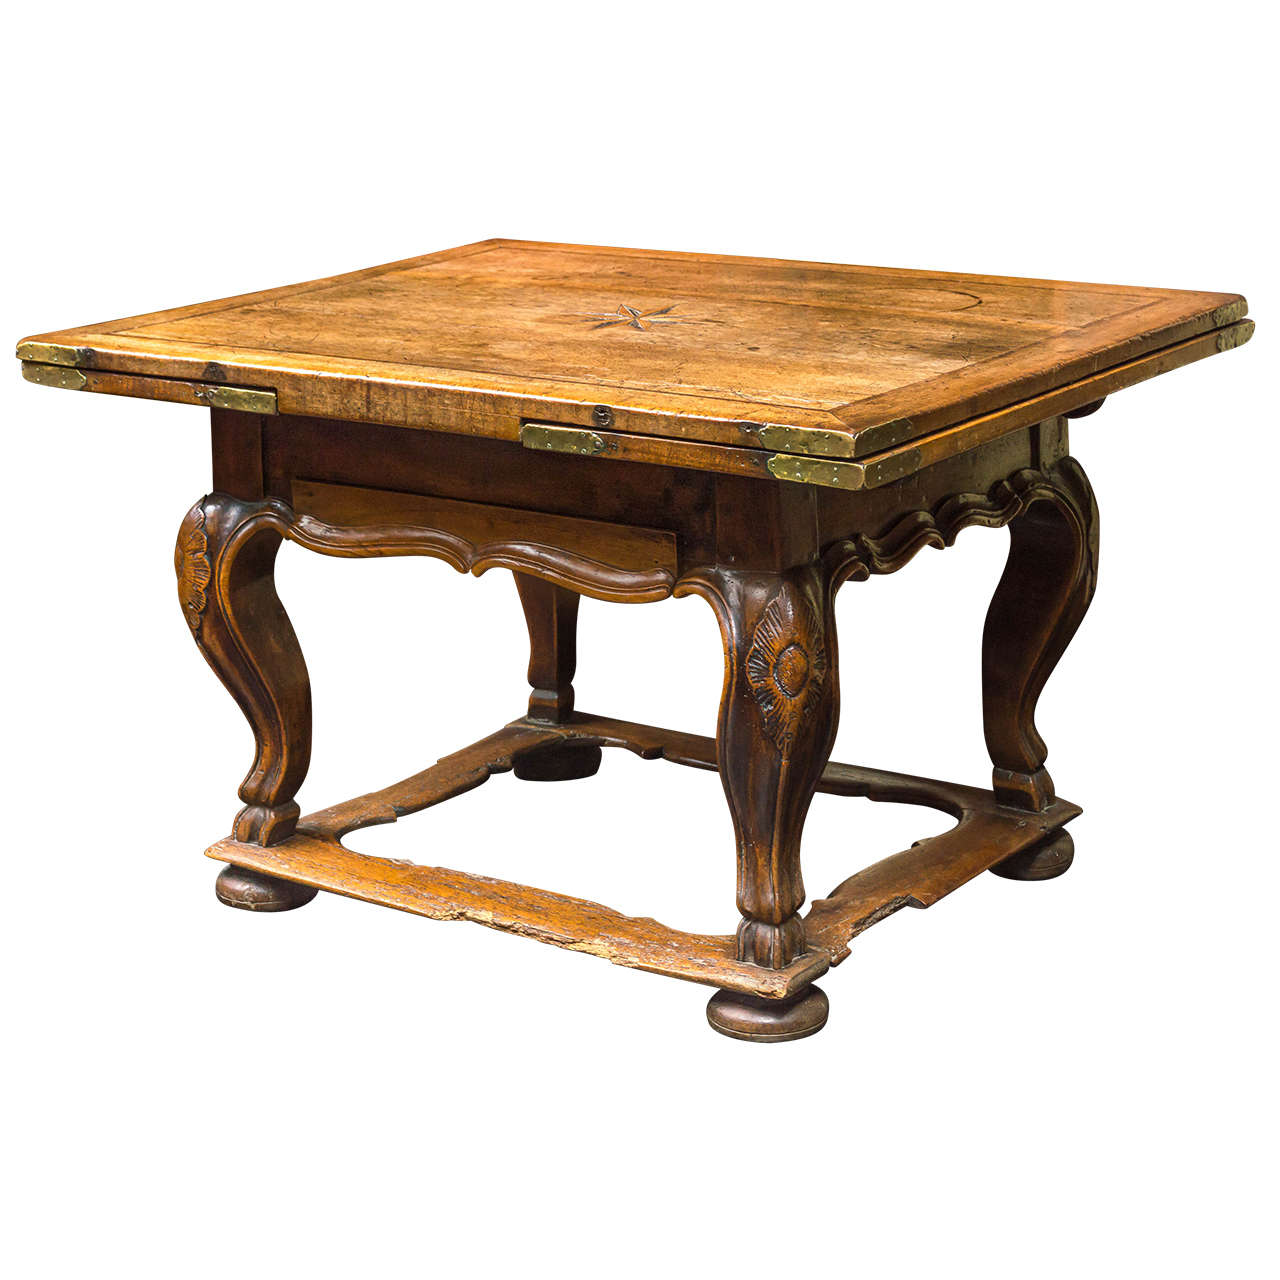 Impressive dutch baroque center table at 1stdibs for Furniture centre table